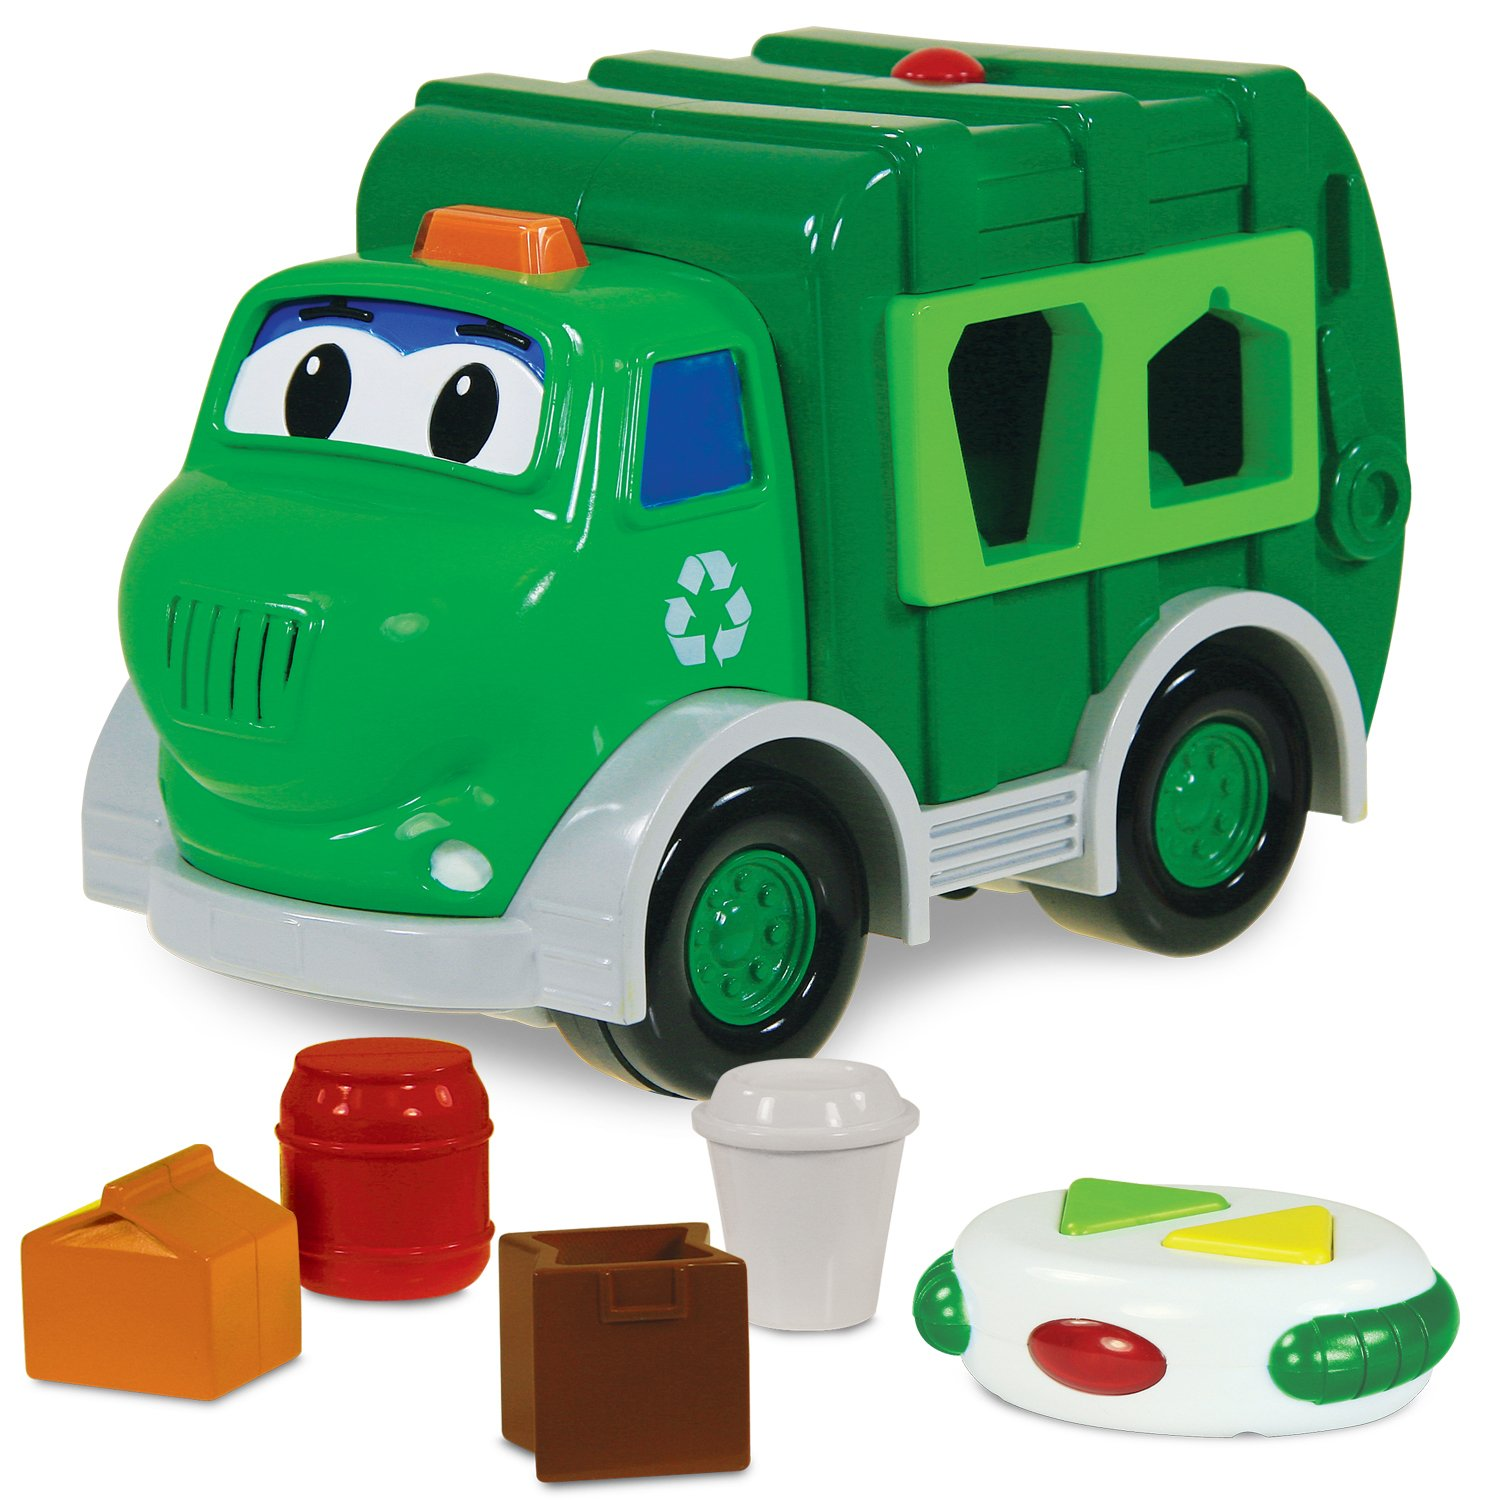 Earth Day recycling recycle toy truck for kids